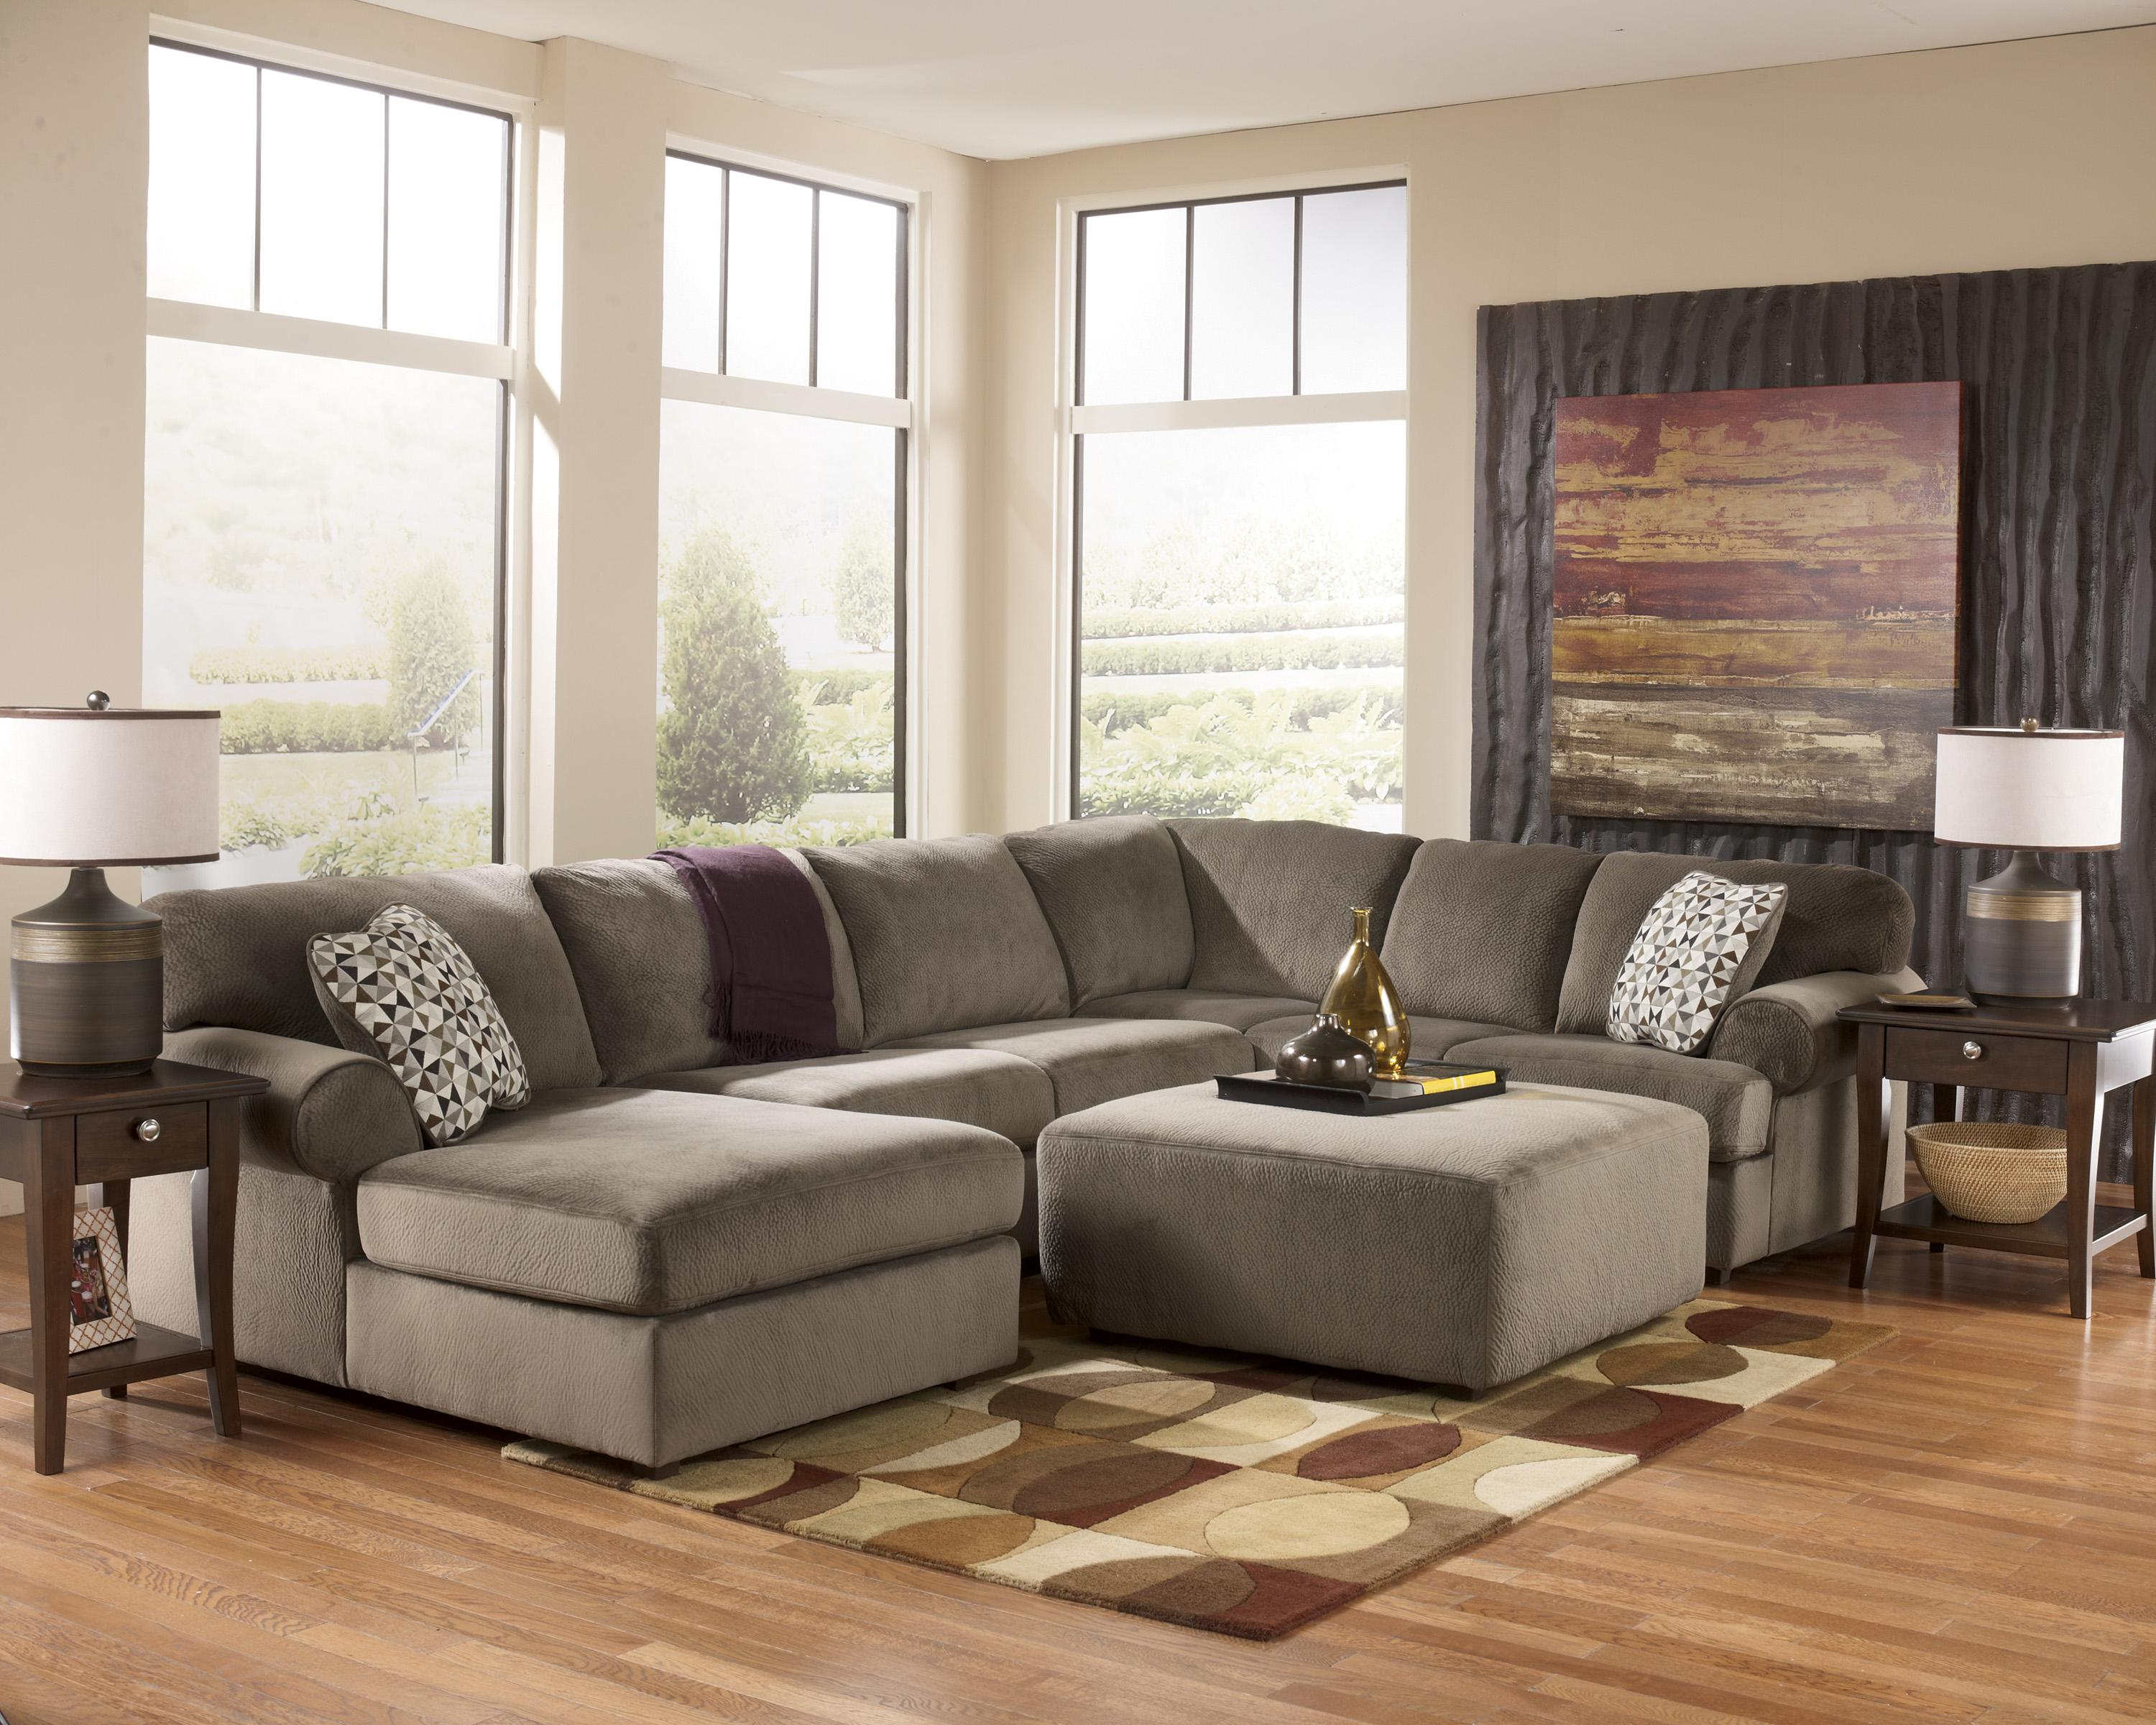 Casual Sectional Sofa With Left Chaise By Signature Design By Ashley Wolf And Gardiner Wolf